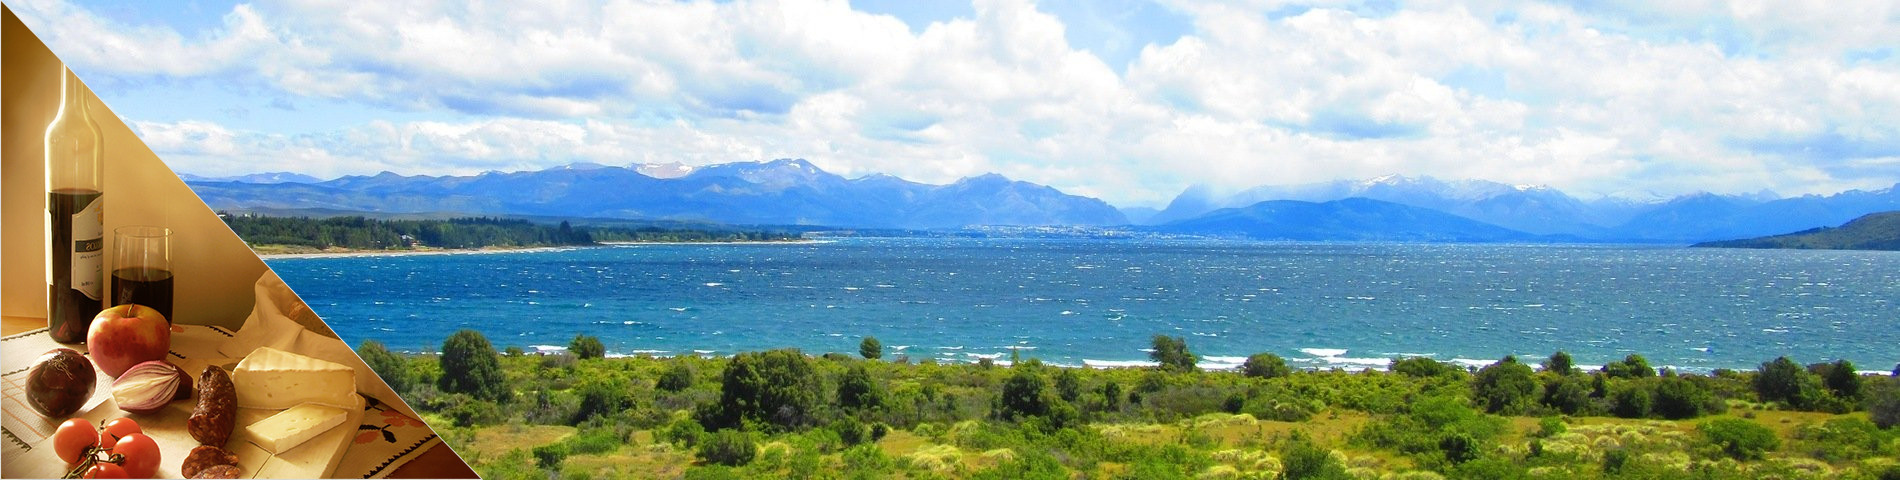 Bariloche - Spanish & Culture